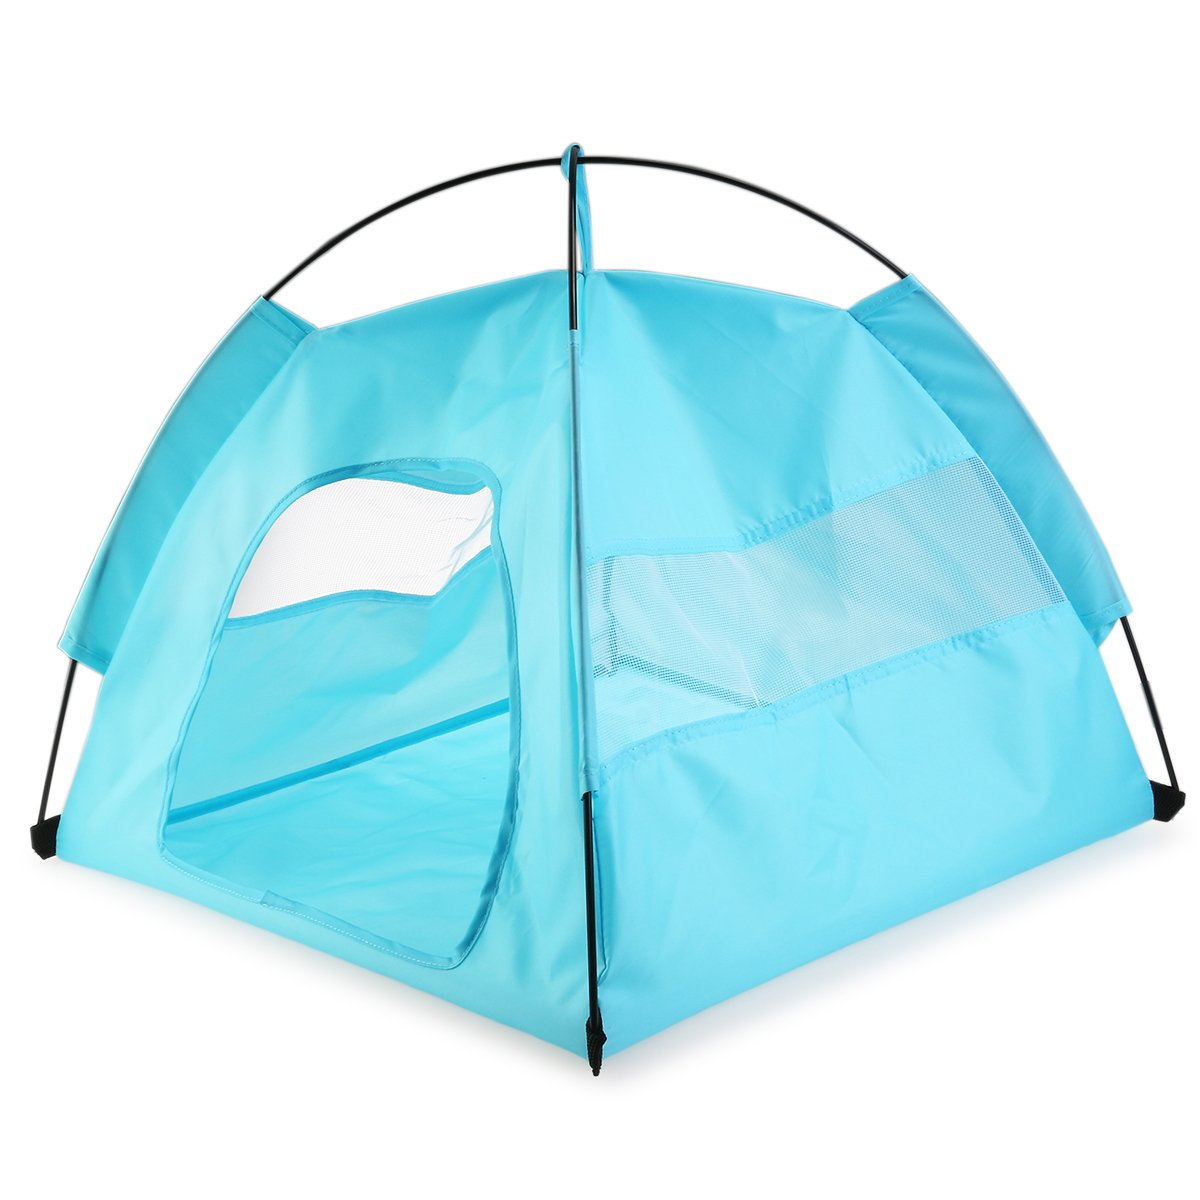 NUOLUX Dog House Tent Portable Folding Large for Indoor Outdoor Waterproof - Size L (Blue)